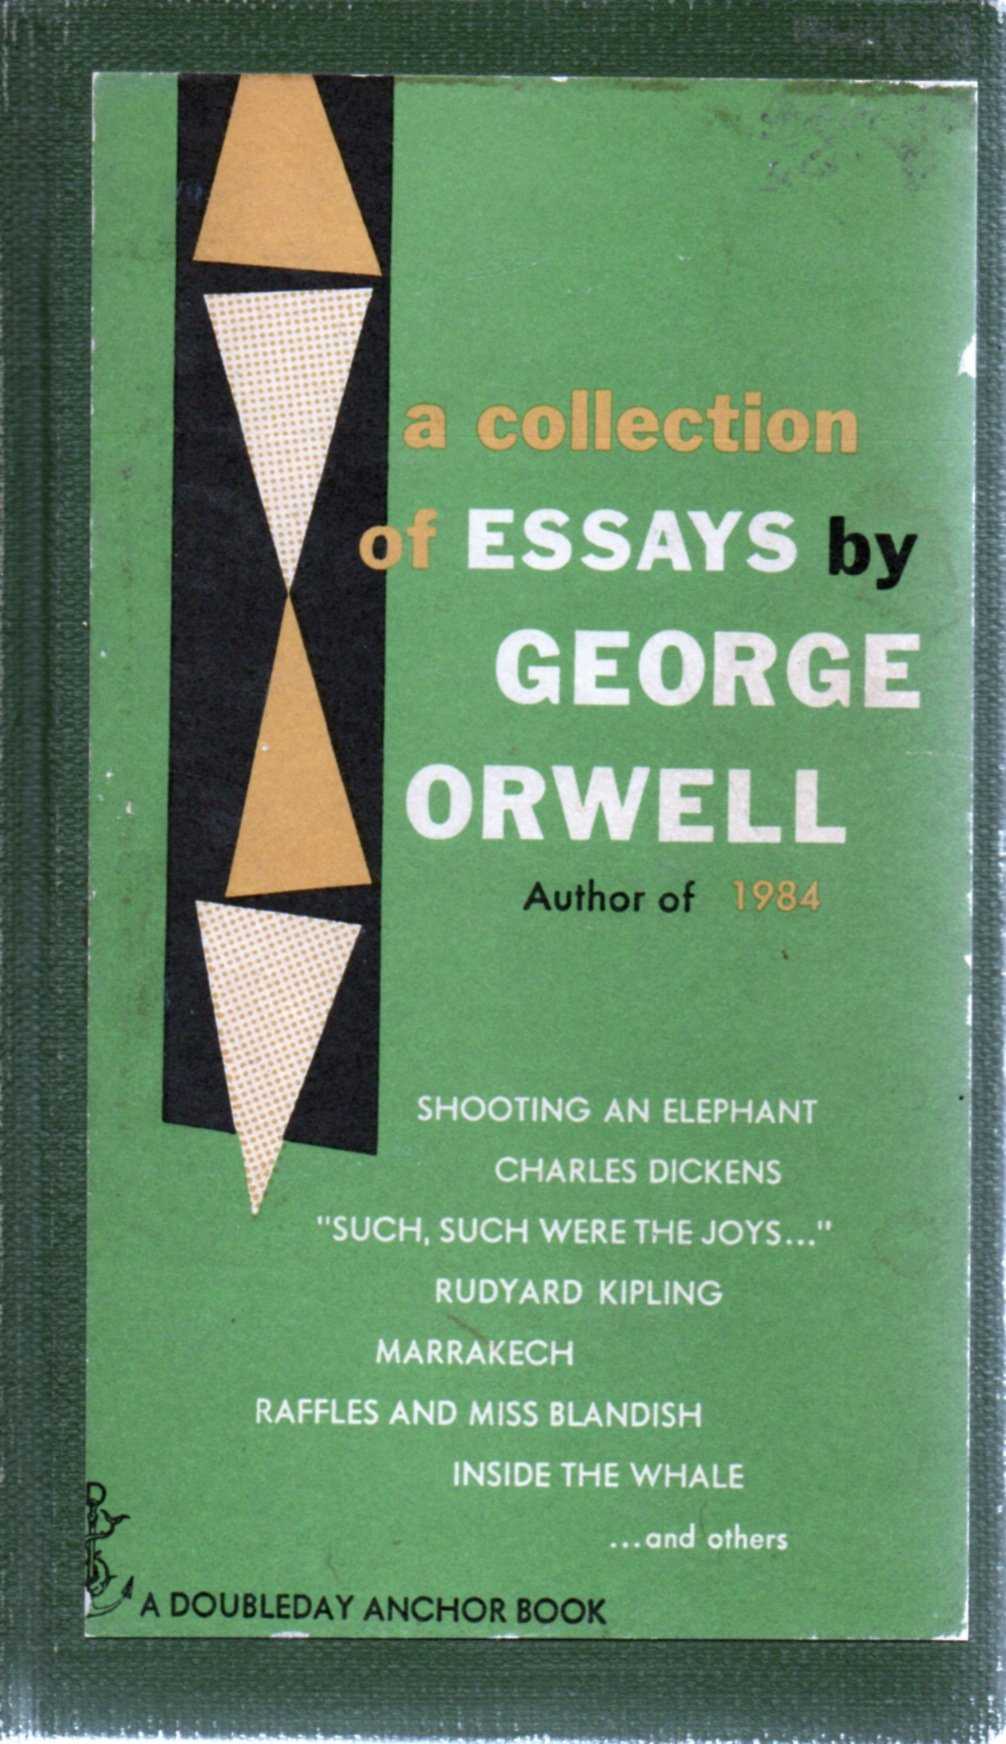 001 Essay Example Orwell Essays Singular Amazon Pdf Epub Full